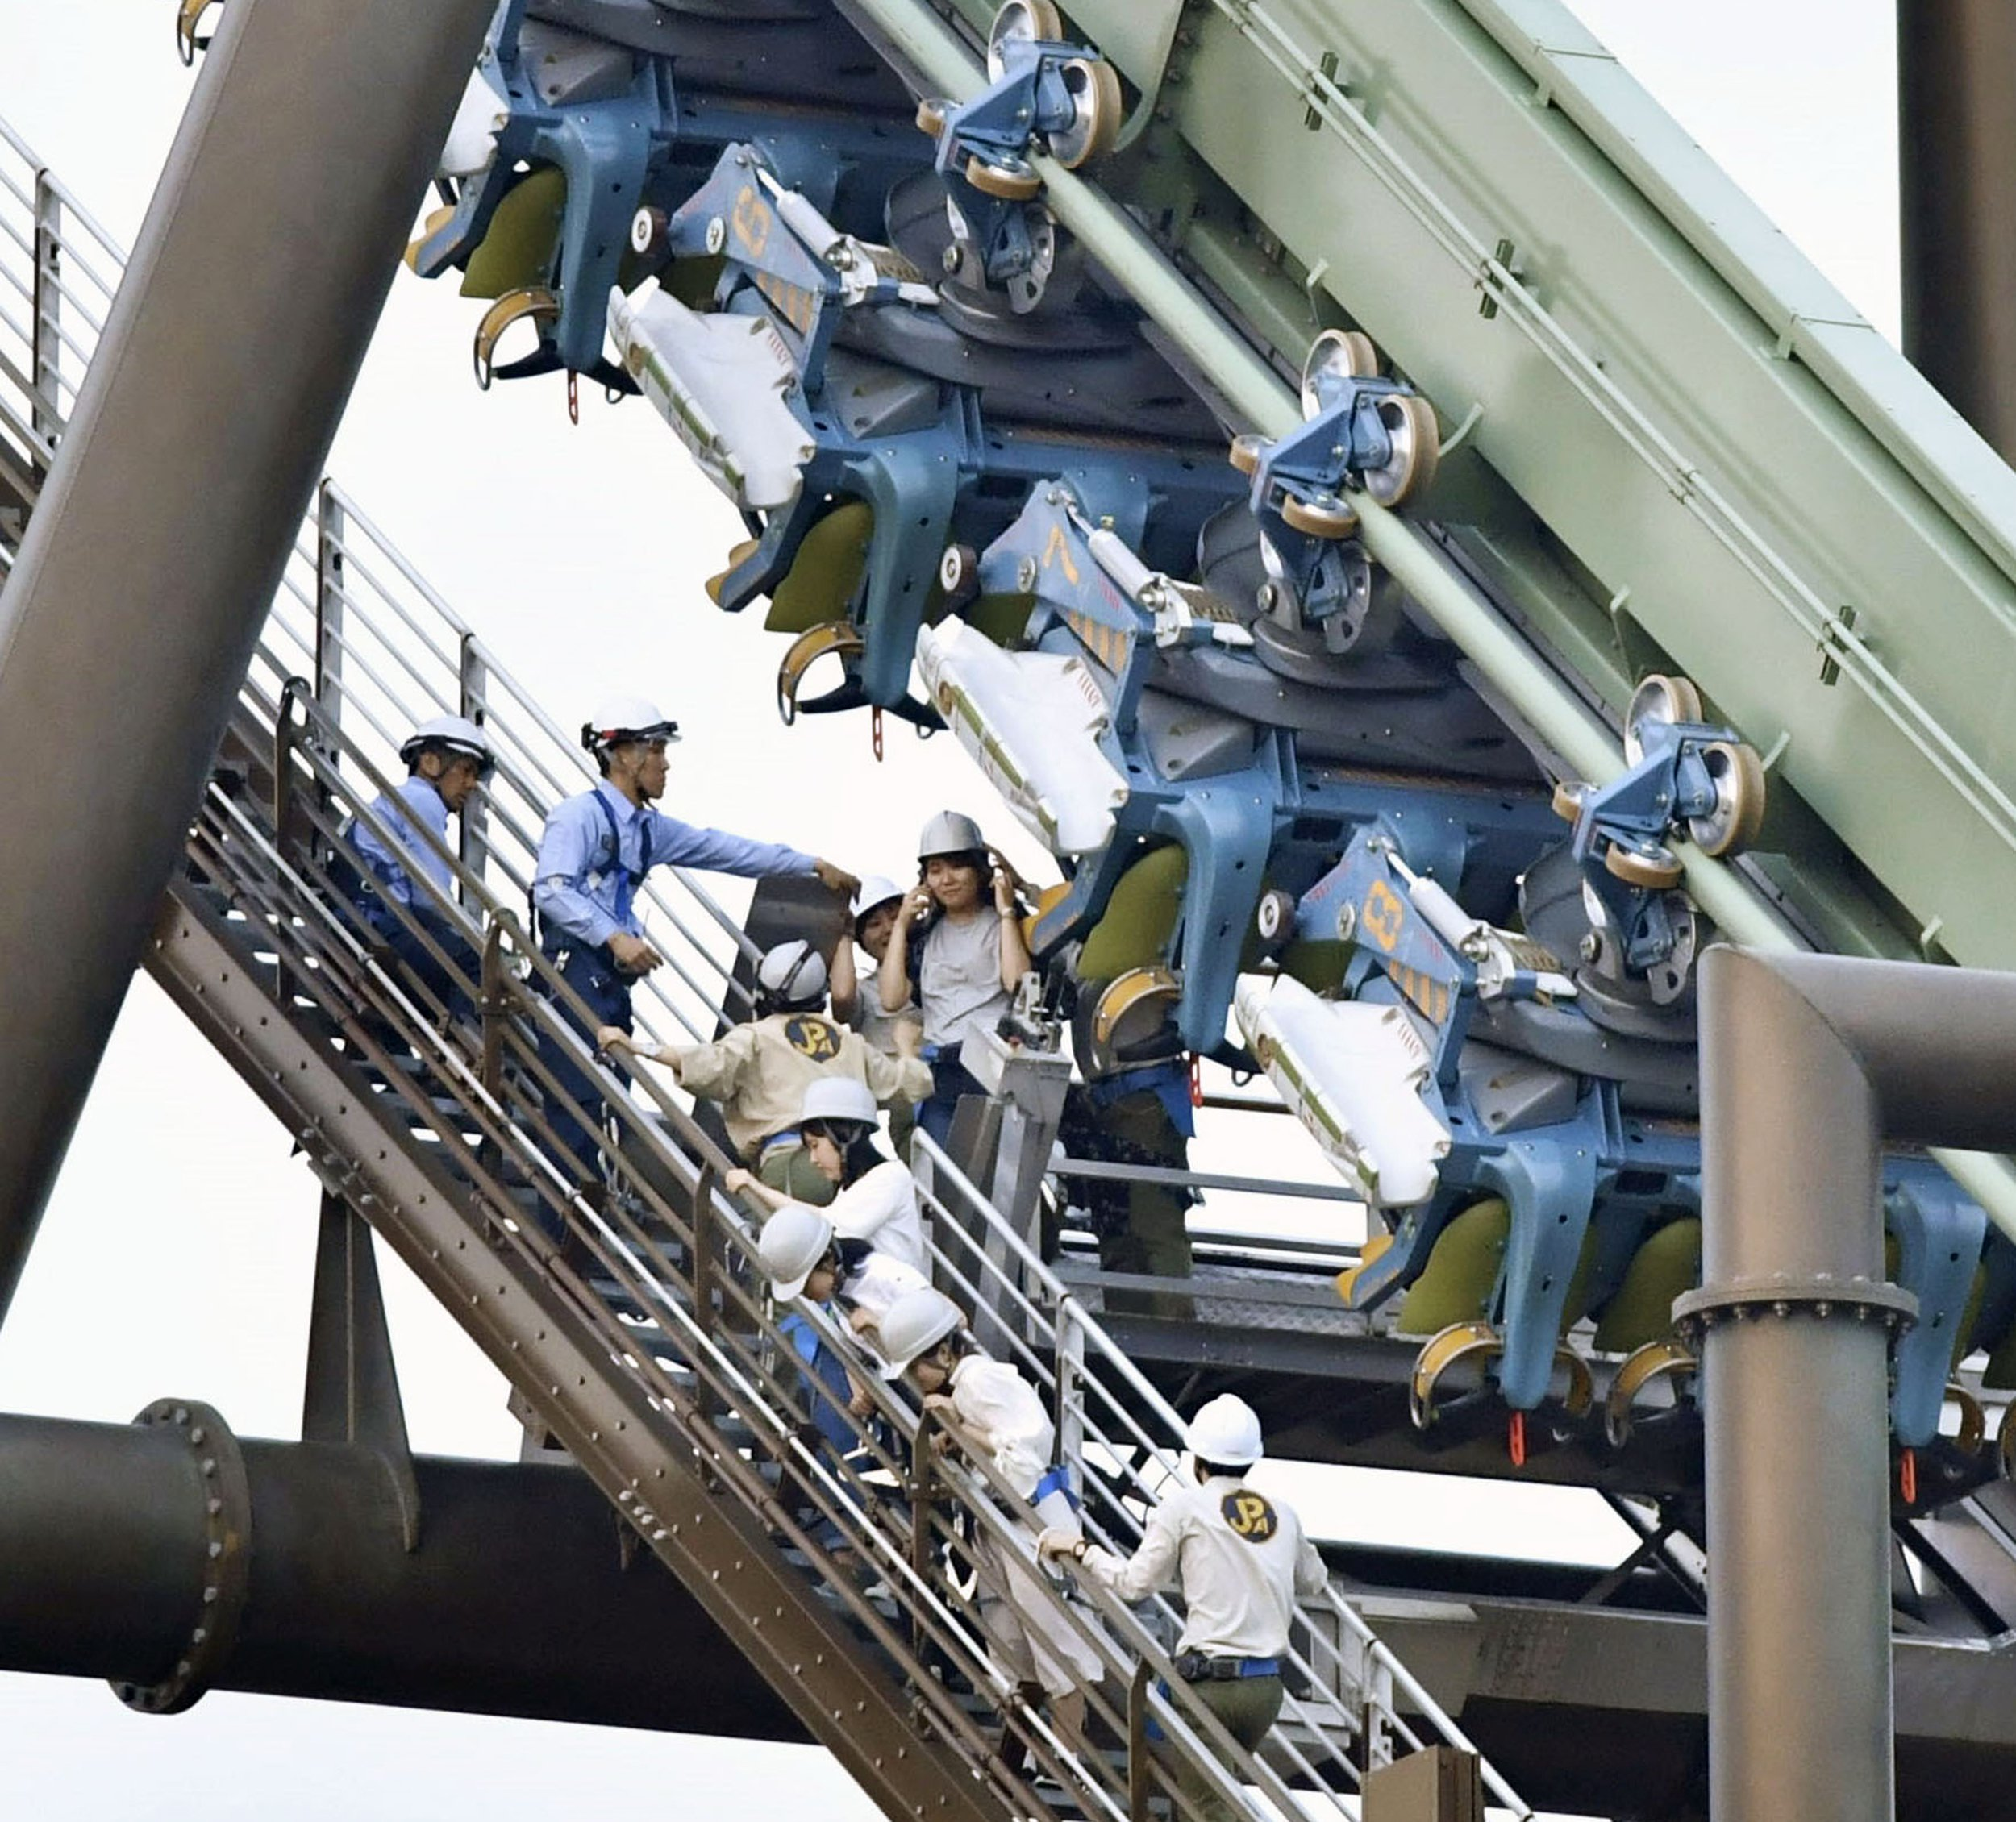 In this Tuesday, May 1, 2018, photo, passengers are rescued from the stopped Flying Dinosaur rollercoaster at Universal Studios Japan amusement park in Osaka, western Japan. Sixty-four passengers were left hanging in the air for up to two hours after the rollercoaster made an emergency stop. The amusement park said the rollercoaster's two carriages stalled midway through the 1,100-meter (yard) ride, with riders suspended in a flying position about 30 meters (100 feet) above the ground. (Chika Oshima/Kyodo News via AP)